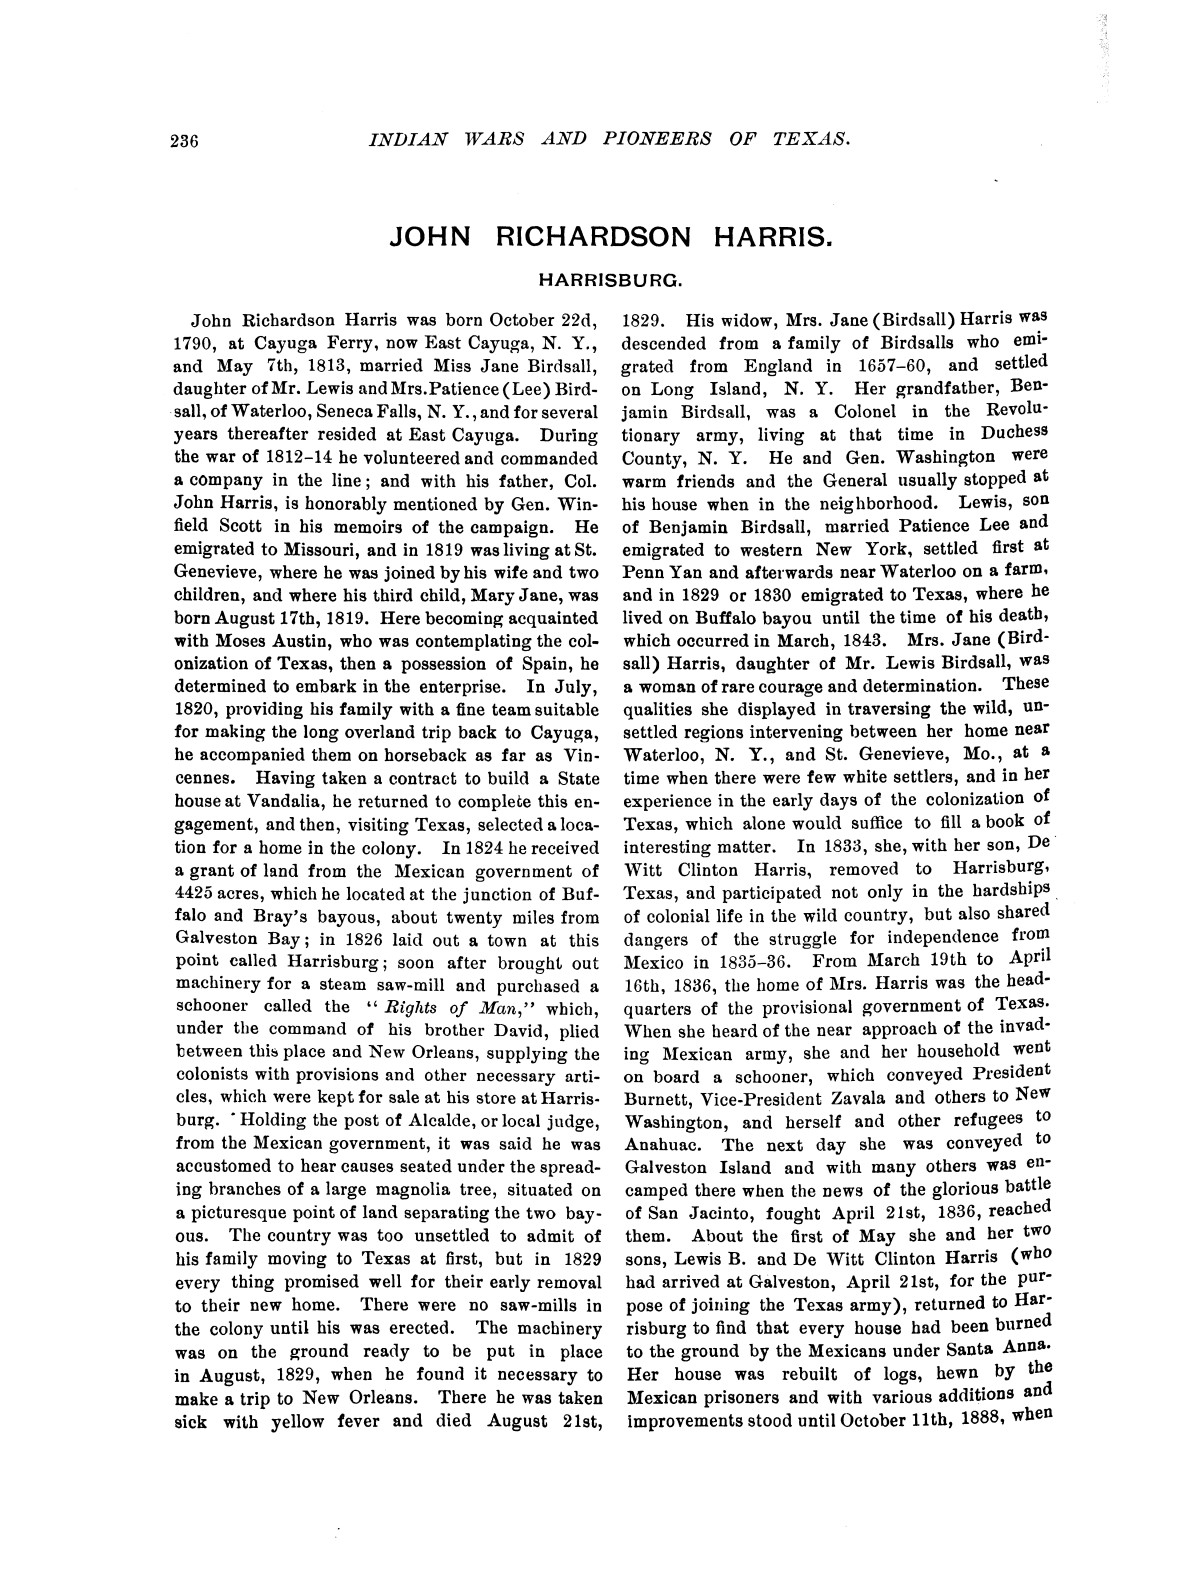 Indian wars and pioneers of Texas / by John Henry Brown.                                                                                                      [Sequence #]: 264 of 894